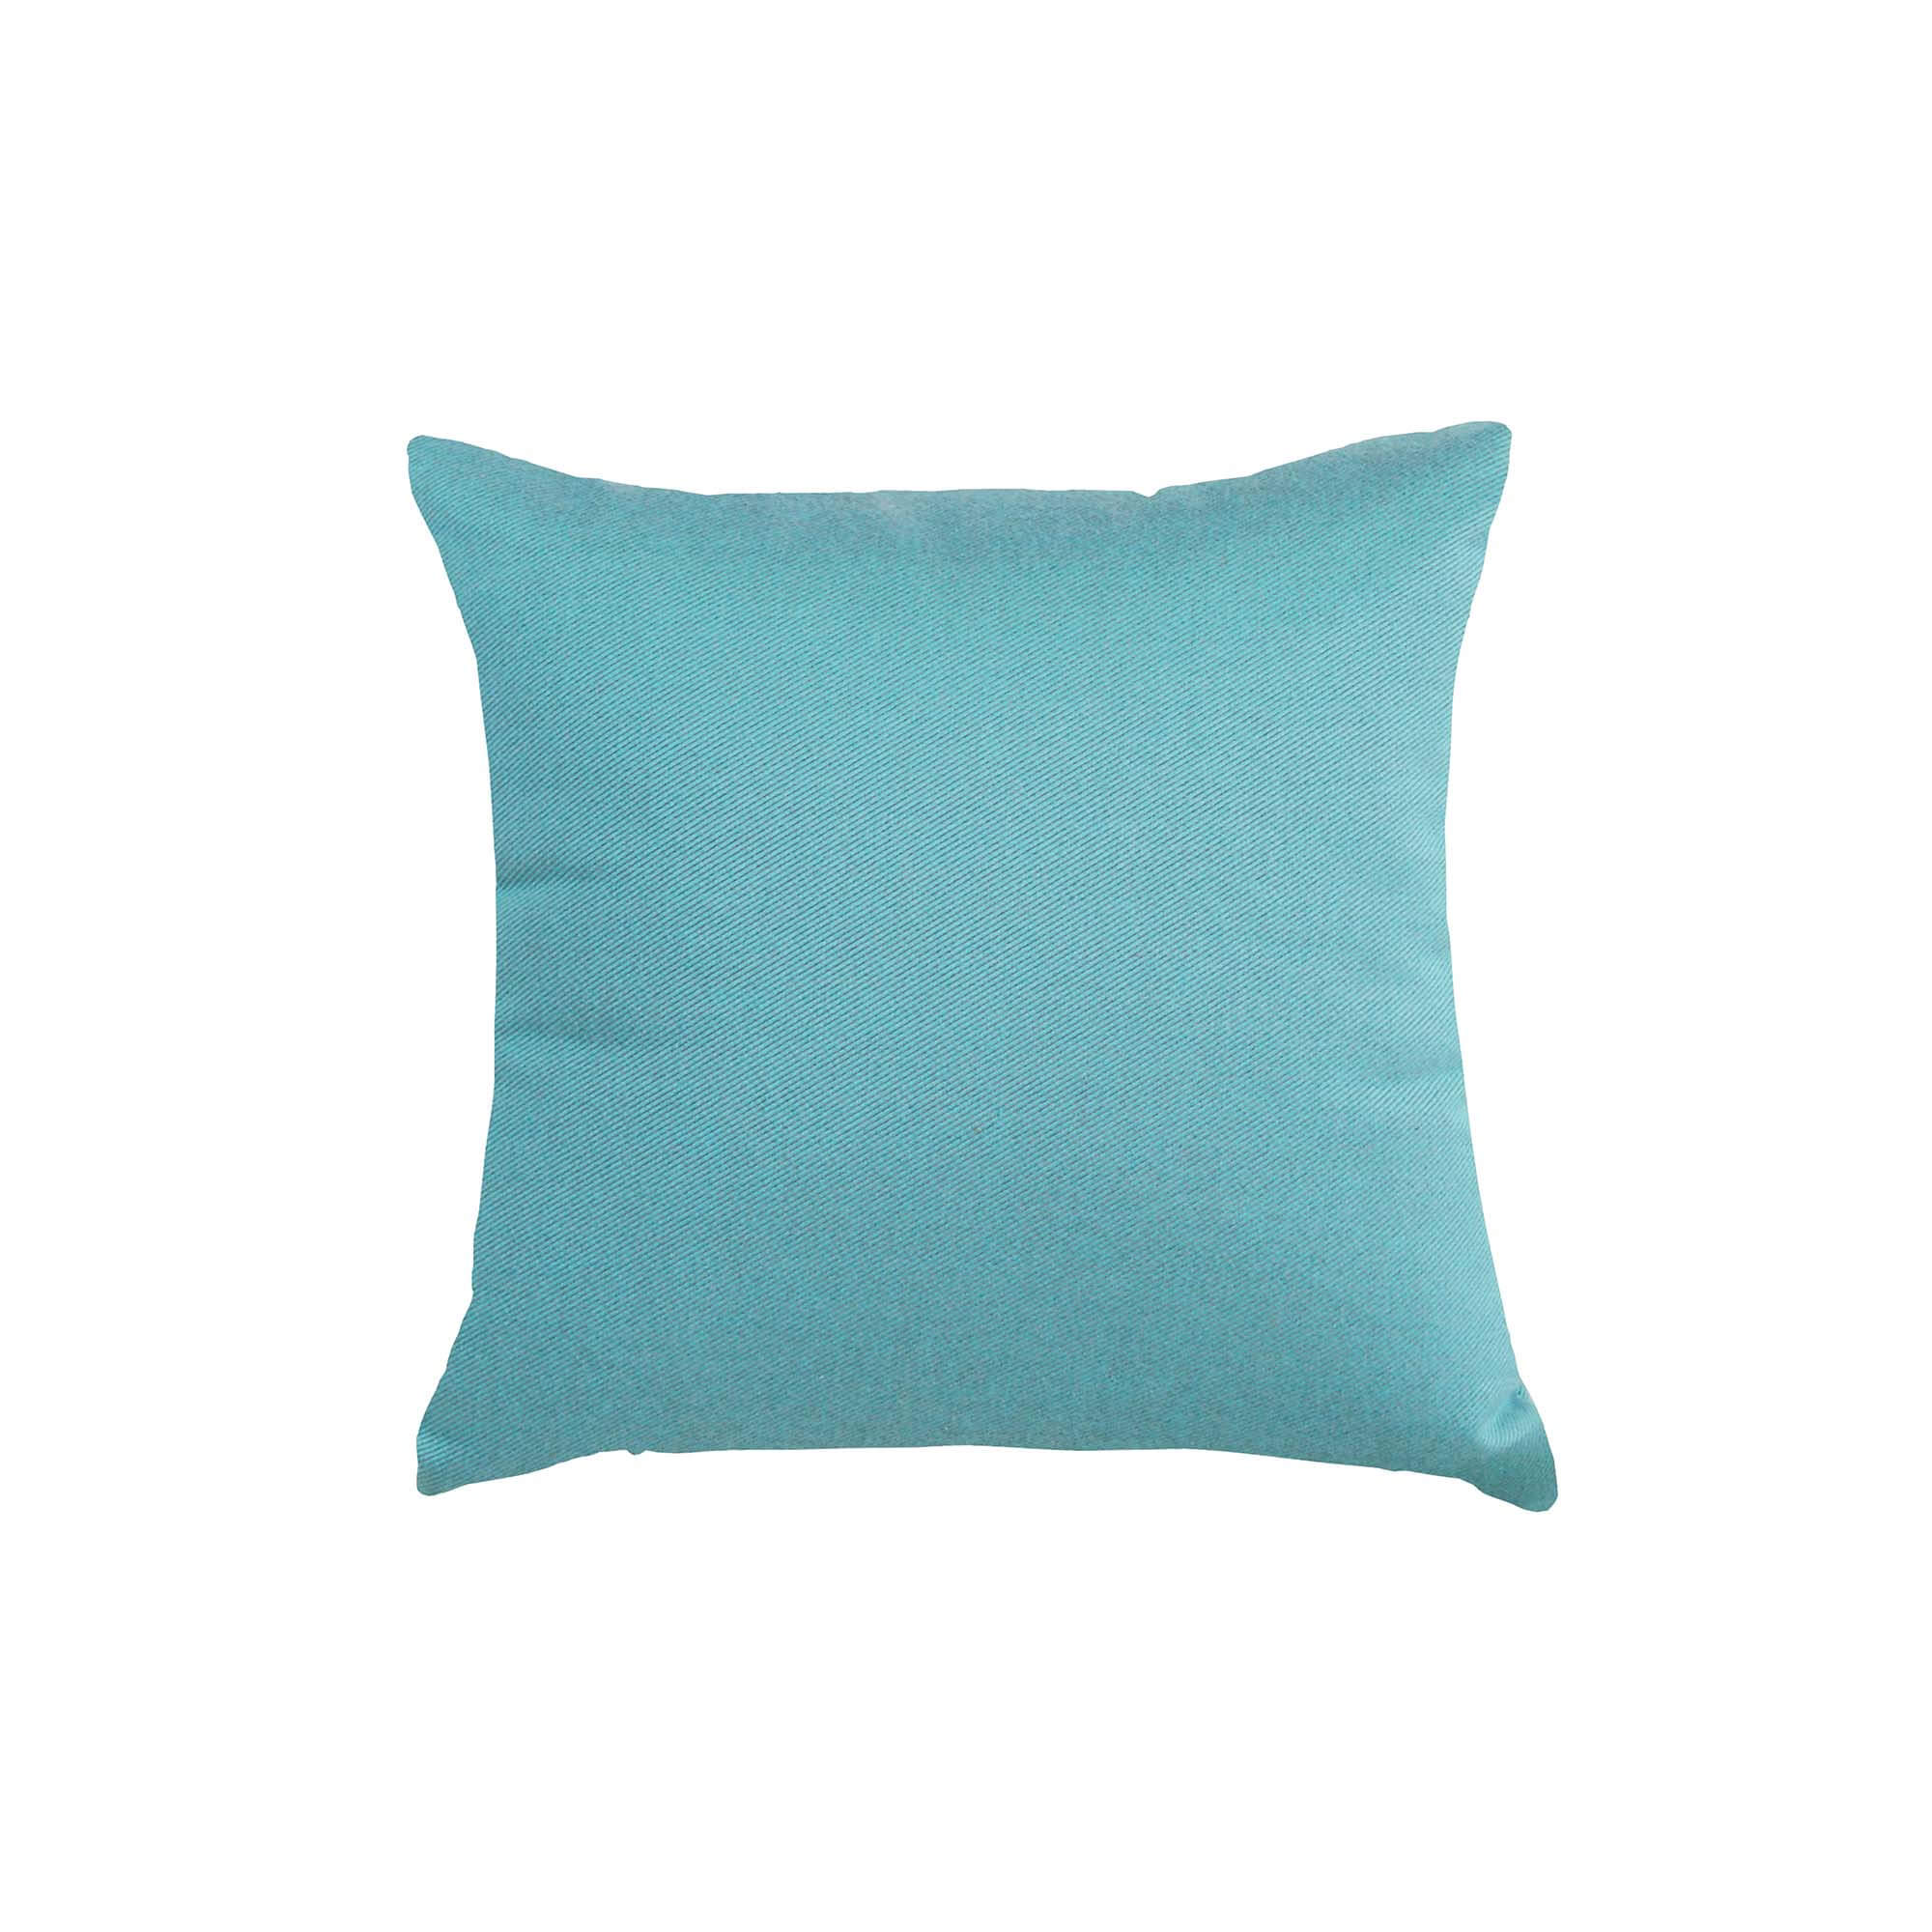 Cuscini 55x55.Garden Cushion 55x55 Outside In Synthetic Fabrics Collection